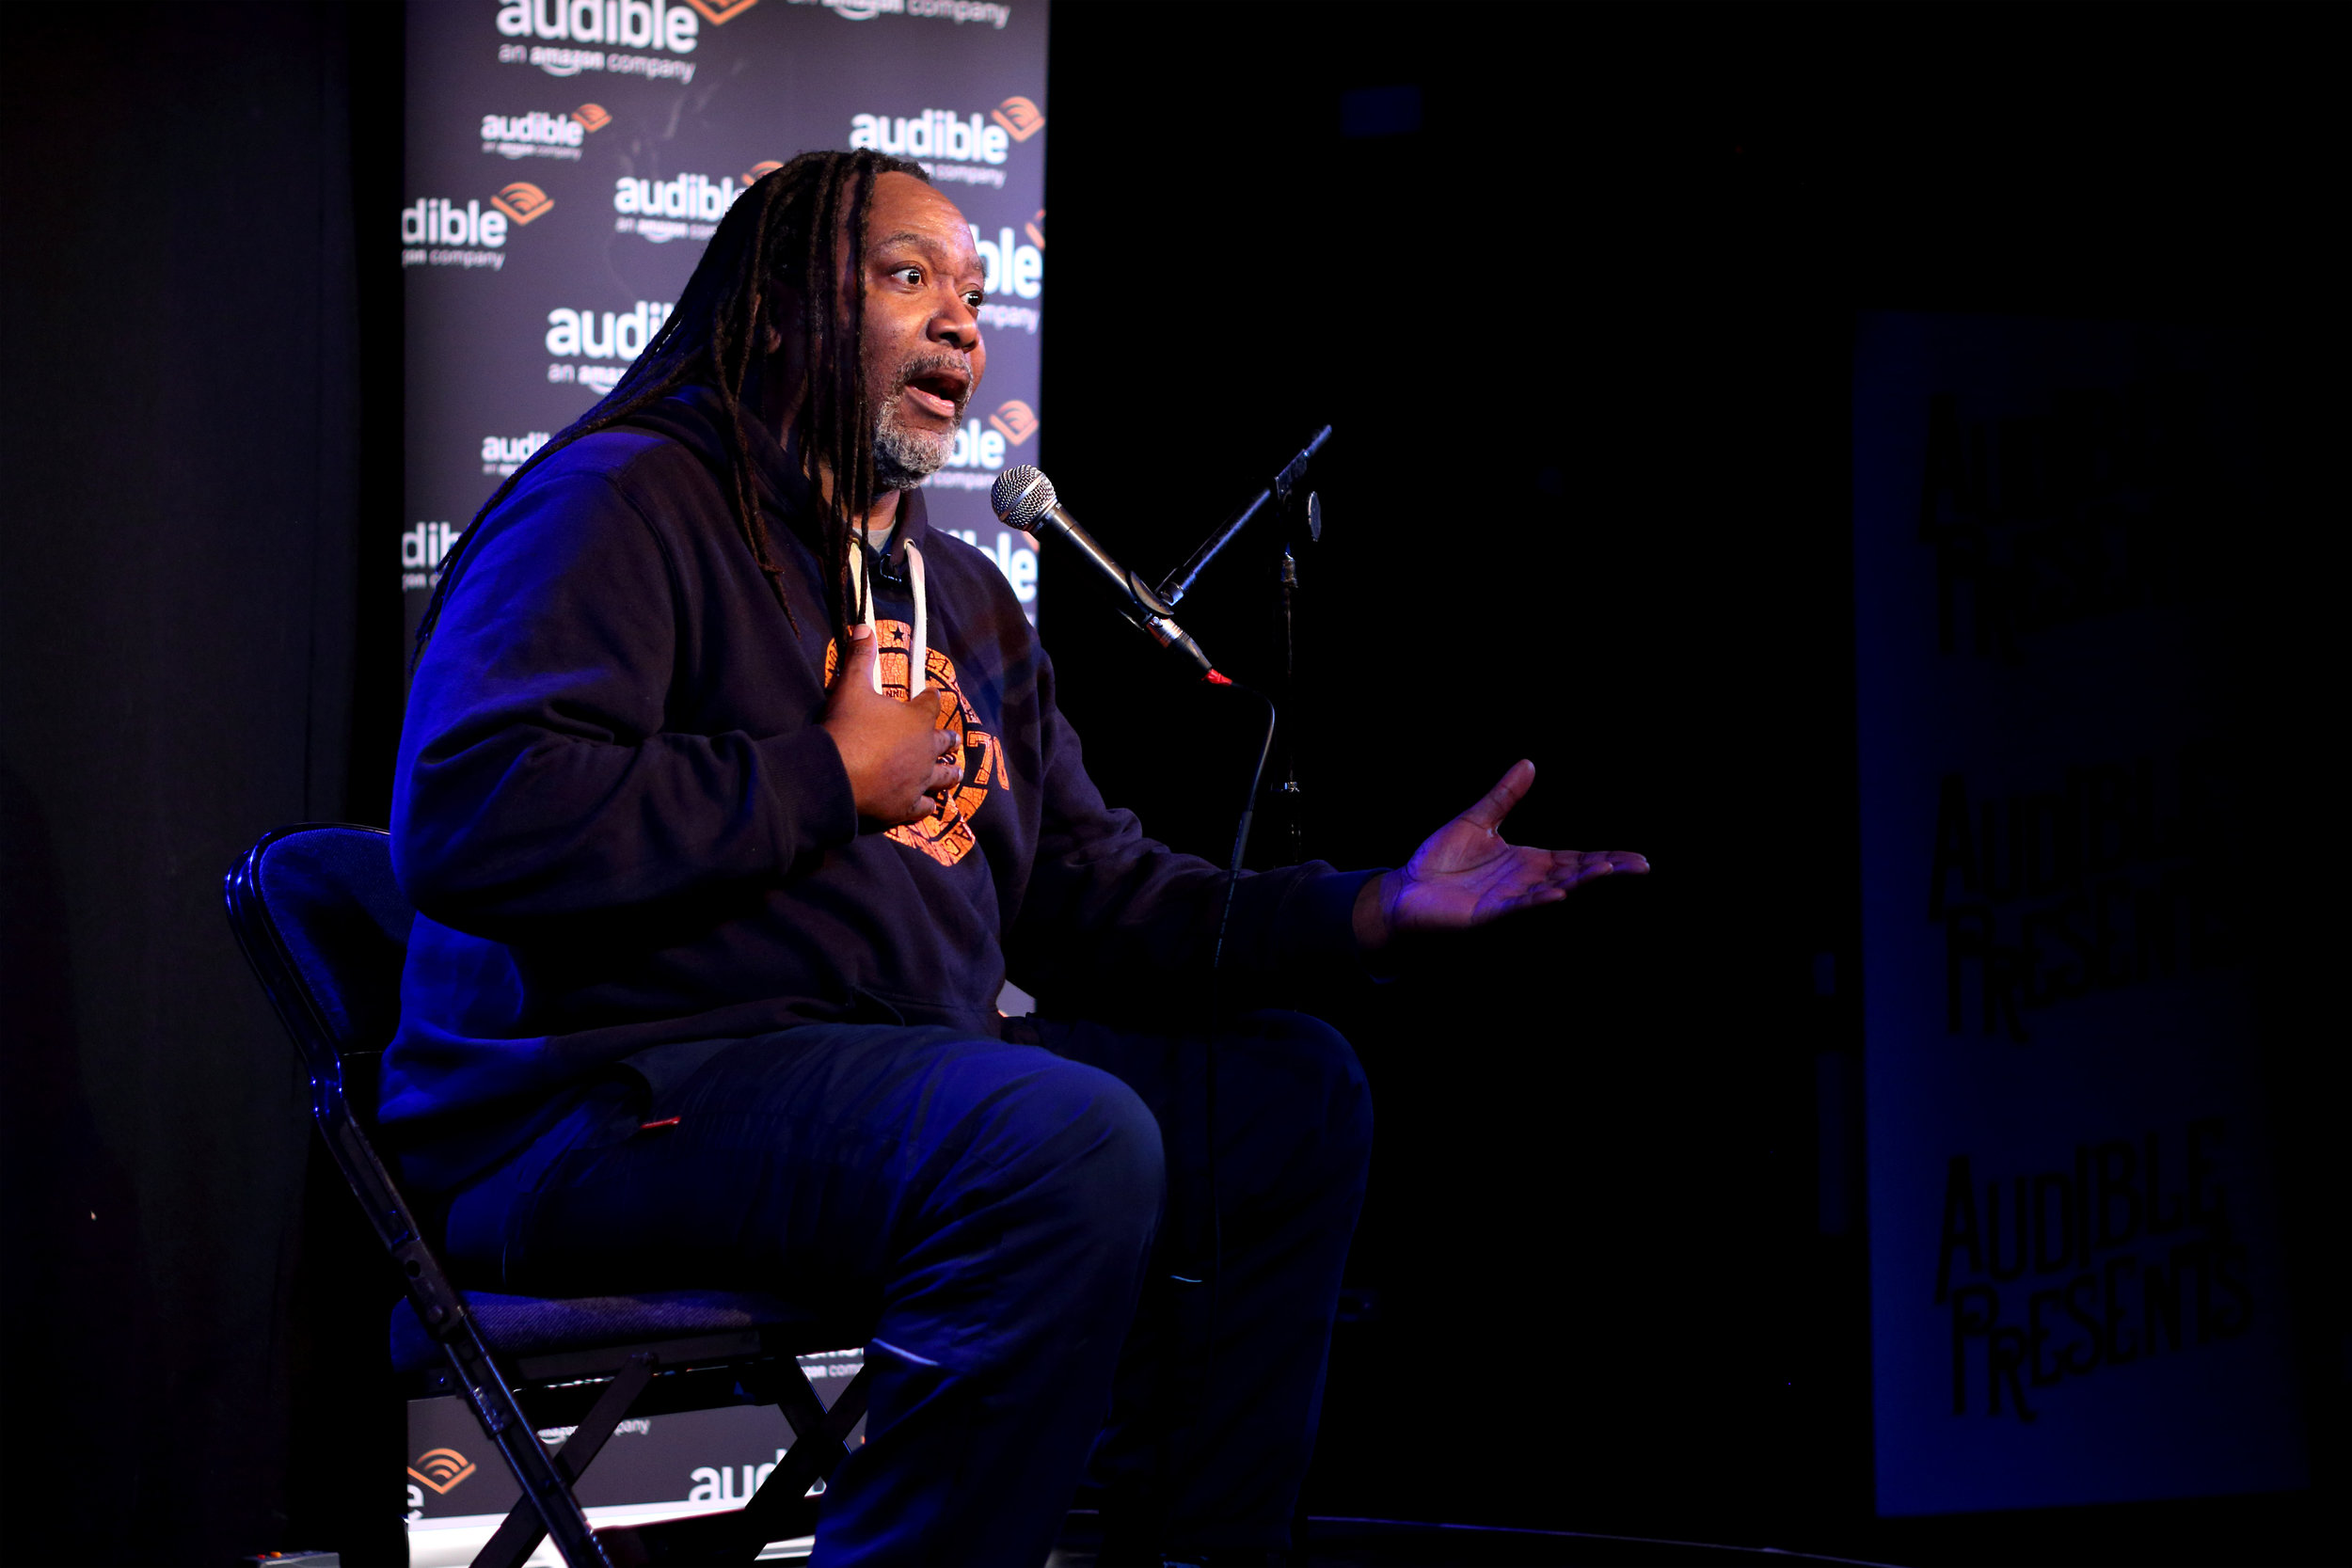 Reginald D Hunter, Audible Presents. Photo: Sarah Breese